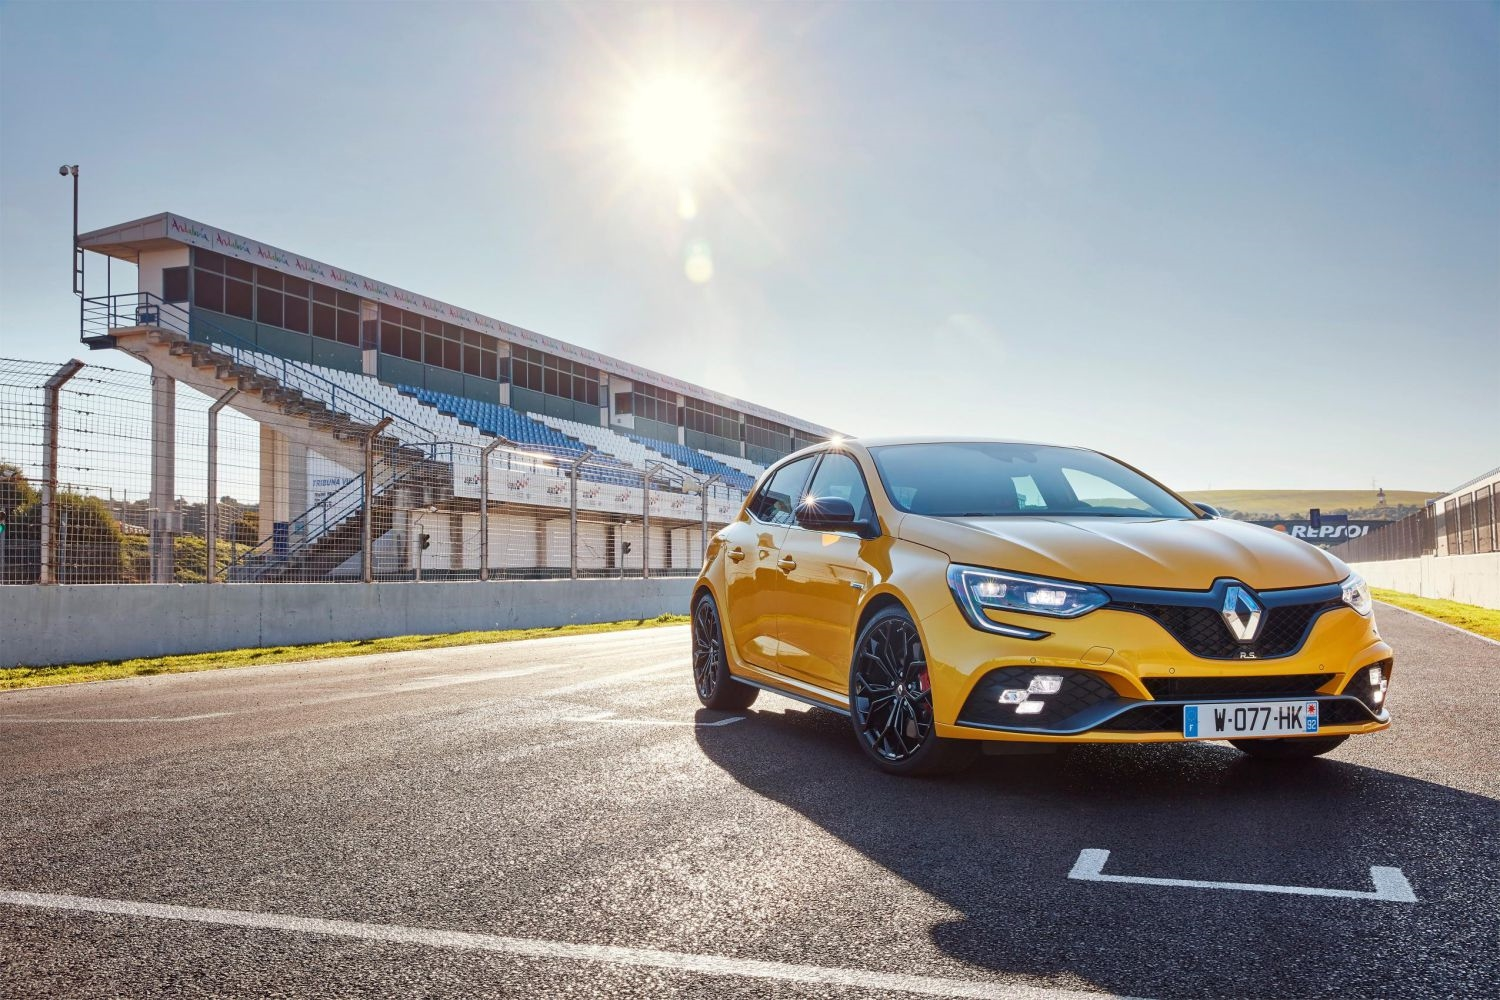 2019 Renault Megane RS specifications and pricing